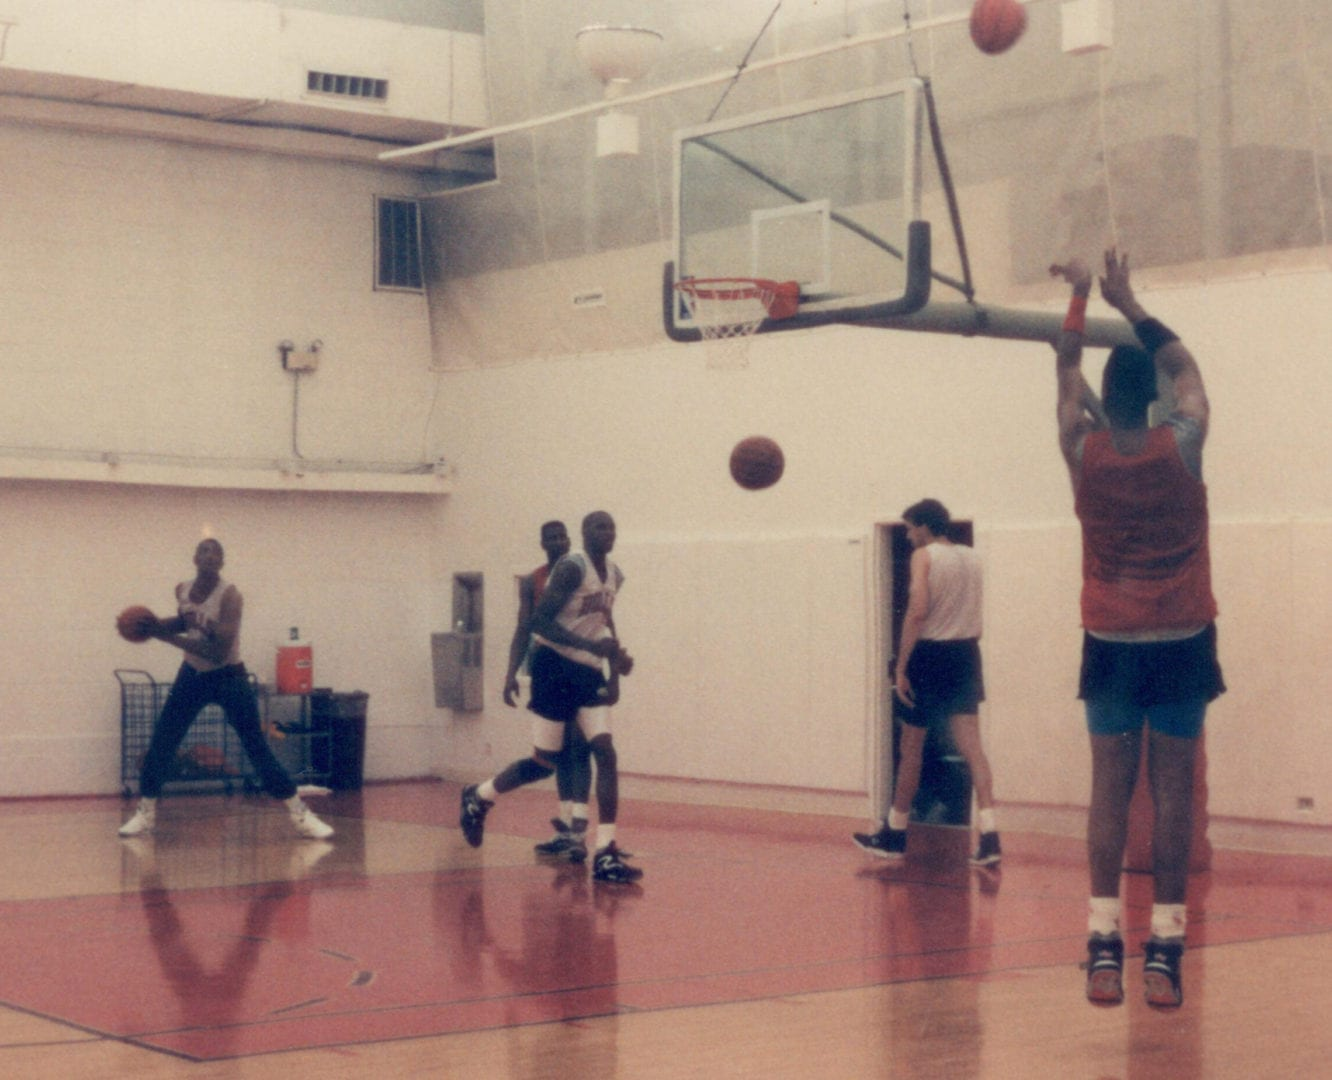 A practice of the Chicago Bulls